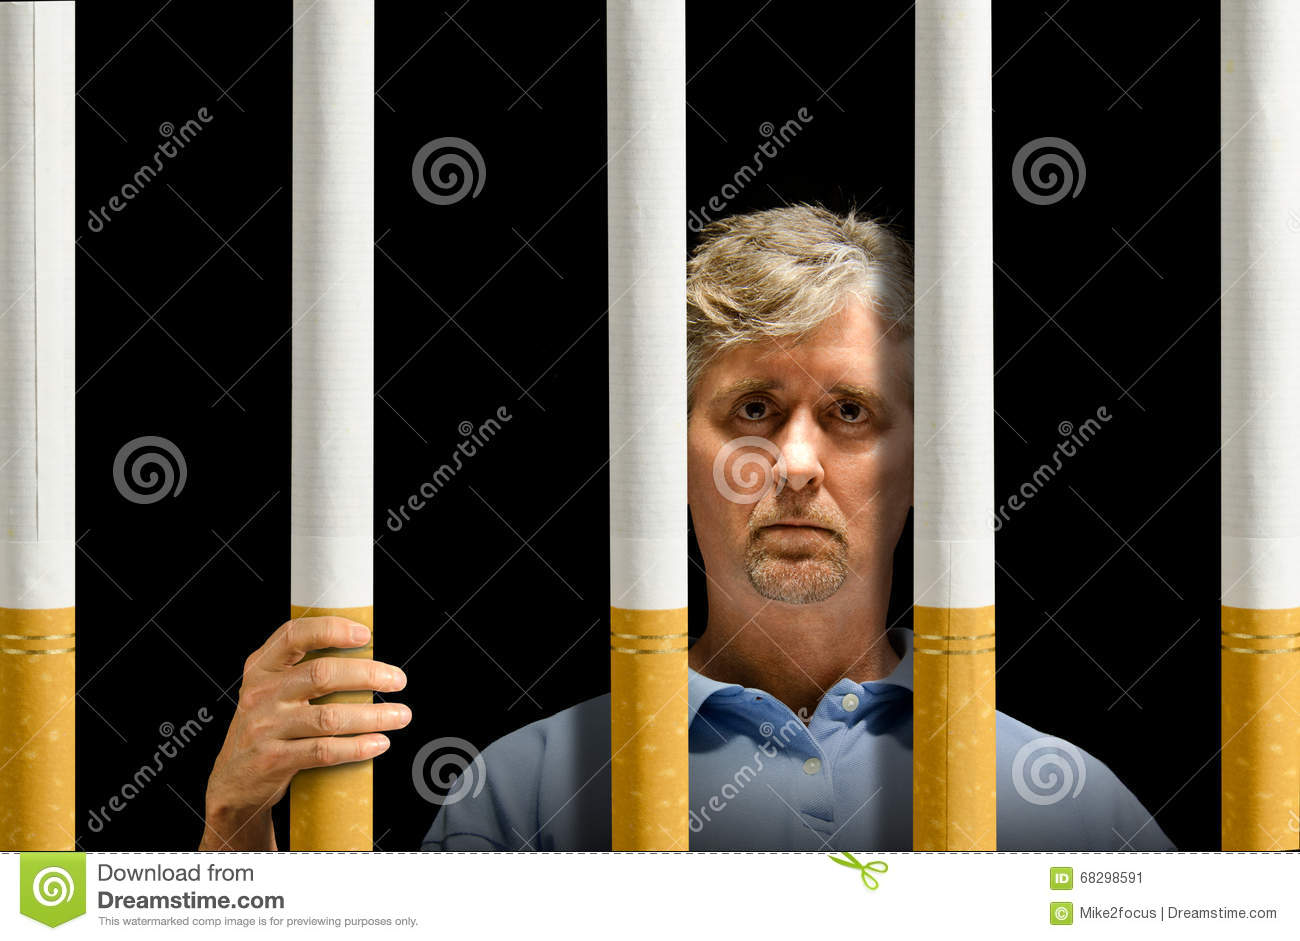 Trapped by cigarettes nicotine addiction prison